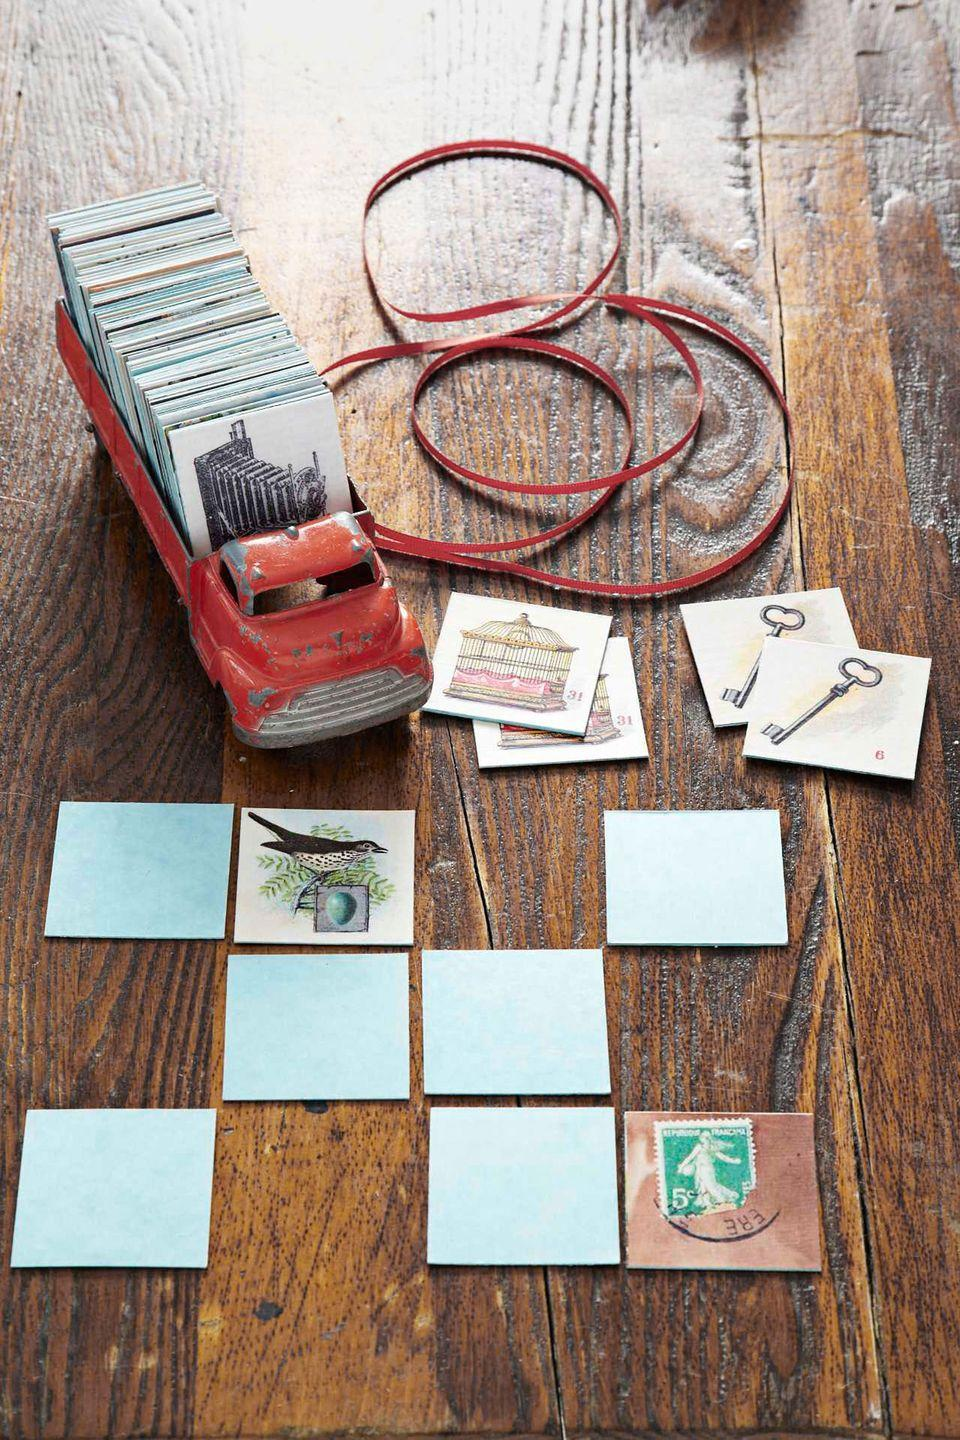 """<p>For this clever project, CL contributing editor Cathe Holden's already done most of the hard work—assembling a slew of vintage images (courtesy of <a href=""""http://graphicsfairy.blogspot.com/"""" rel=""""nofollow noopener"""" target=""""_blank"""" data-ylk=""""slk:The Graphics Fairy"""" class=""""link rapid-noclick-resp"""">The Graphics Fairy</a>) into four easy-to-print PDFs: <a href=""""http://clv.h-cdn.co/assets/cm/15/24/5578b42c01210_-_CLCHGFConcentration1.pdf"""" rel=""""nofollow noopener"""" target=""""_blank"""" data-ylk=""""slk:1"""" class=""""link rapid-noclick-resp"""">1</a>, <a href=""""http://clv.h-cdn.co/assets/cm/15/24/5578b42edd295_-_CLCHGFConcentration2.pdf"""" rel=""""nofollow noopener"""" target=""""_blank"""" data-ylk=""""slk:2"""" class=""""link rapid-noclick-resp"""">2</a>, <a href=""""http://clv.h-cdn.co/assets/cm/15/24/5578b43149617_-_CLCHGFConcentration3.pdf"""" rel=""""nofollow noopener"""" target=""""_blank"""" data-ylk=""""slk:3"""" class=""""link rapid-noclick-resp"""">3</a>, <a href=""""http://clv.h-cdn.co/assets/cm/15/24/5578b433a99b6_-_CLCHGFConcentration4.pdf"""" rel=""""nofollow noopener"""" target=""""_blank"""" data-ylk=""""slk:4"""" class=""""link rapid-noclick-resp"""">4</a>. Print out two copies of each PDF onto <a href=""""https://www.amazon.com/Premium-White-Smooth-8-5x11-Heavyweight/dp/B01N5WPKA2/?tag=syn-yahoo-20&ascsubtag=%5Bartid%7C10050.g.645%5Bsrc%7Cyahoo-us"""" rel=""""nofollow noopener"""" target=""""_blank"""" data-ylk=""""slk:8 1/2&quot; x 11&quot; card stock"""" class=""""link rapid-noclick-resp"""">8 1/2"""" x 11"""" card stock</a>. With a <a href=""""https://www.amazon.com/Royal-Brush-Foam-4-Pack/dp/B0052UN1JA?tag=syn-yahoo-20&ascsubtag=%5Bartid%7C10050.g.645%5Bsrc%7Cyahoo-us"""" rel=""""nofollow noopener"""" target=""""_blank"""" data-ylk=""""slk:foam brush"""" class=""""link rapid-noclick-resp"""">foam brush</a>, apply <a href=""""https://www.amazon.com/Mod-Podge-Waterbase-16-Ounce-CS11202/dp/B00178QQJ8/?tag=syn-yahoo-20&ascsubtag=%5Bartid%7C10050.g.645%5Bsrc%7Cyahoo-us"""" rel=""""nofollow noopener"""" target=""""_blank"""" data-ylk=""""slk:Mod Podge"""" class=""""link rapid-noclick-resp"""">Mod Podge</a> to the back of each card-stock printout be"""